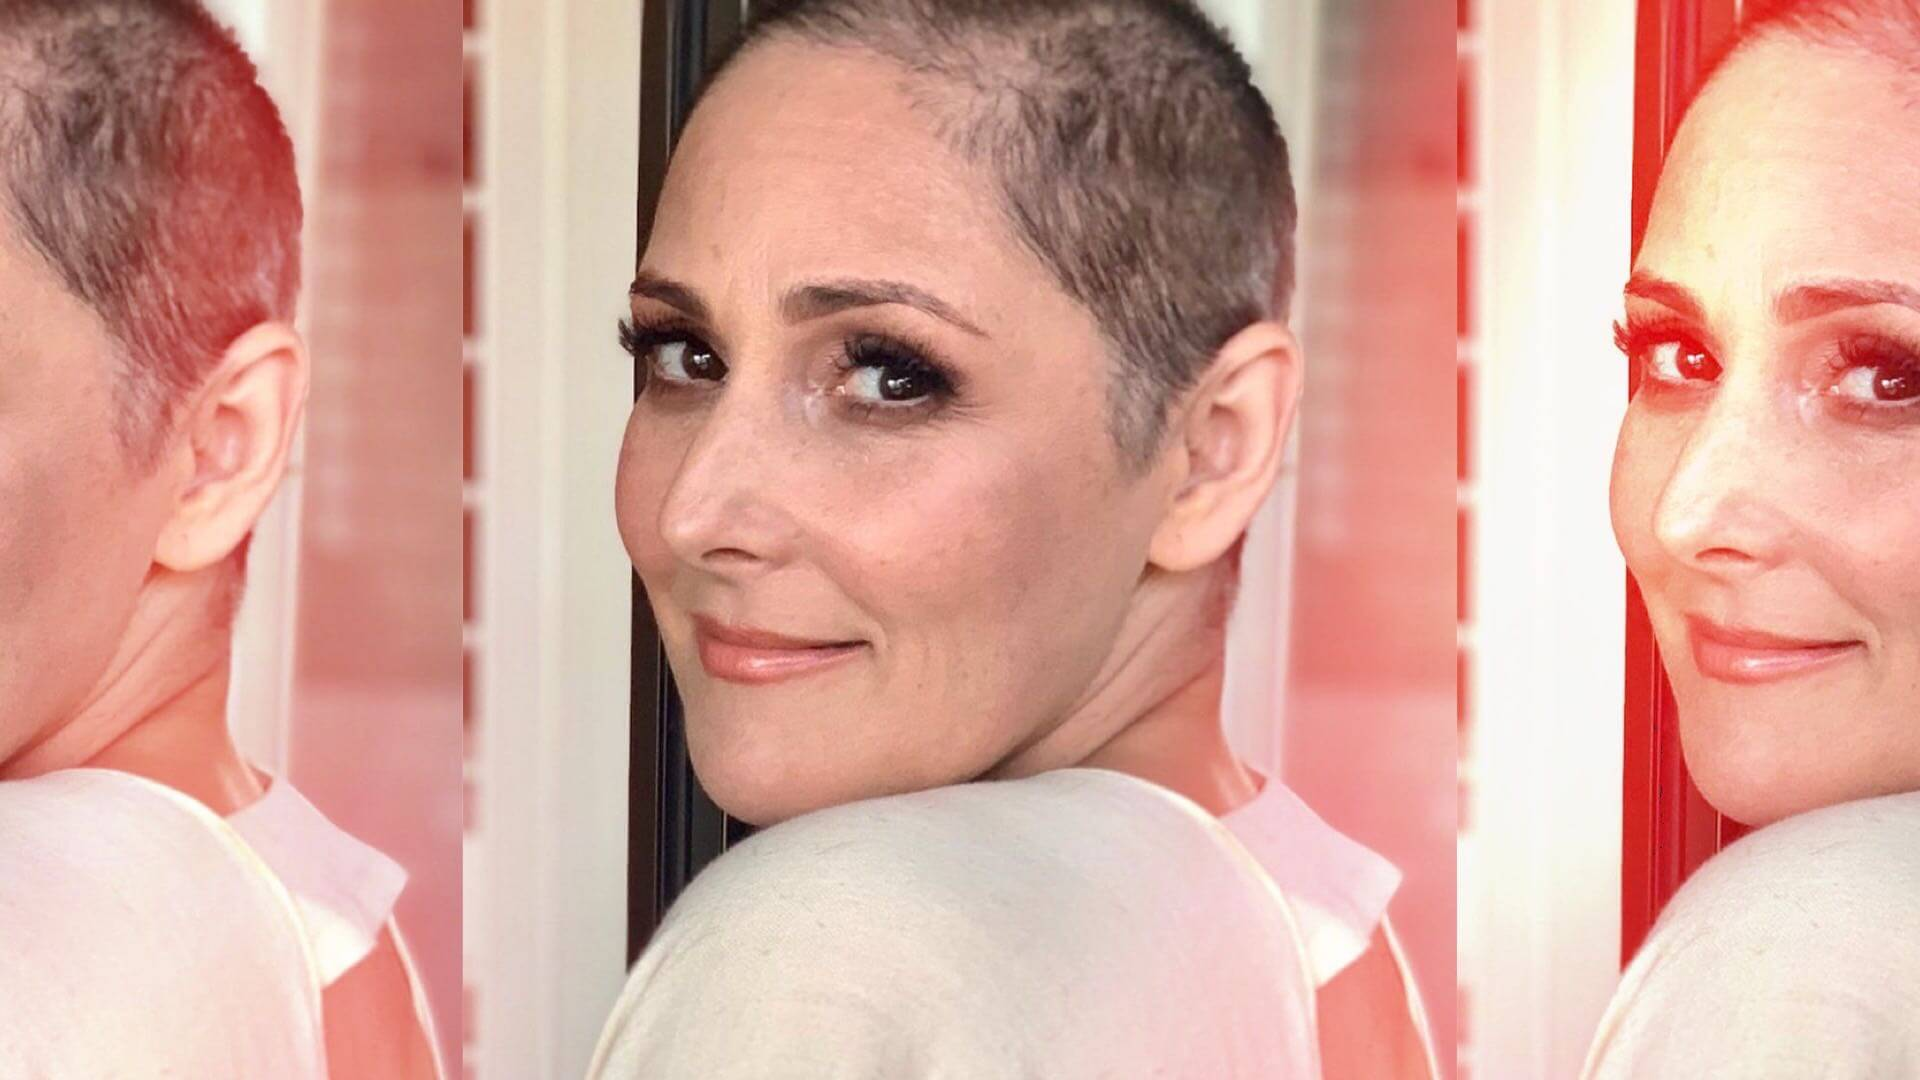 Ricki Lake Rocks Buzzcut After Sharing Hair Loss Journey on Instagram